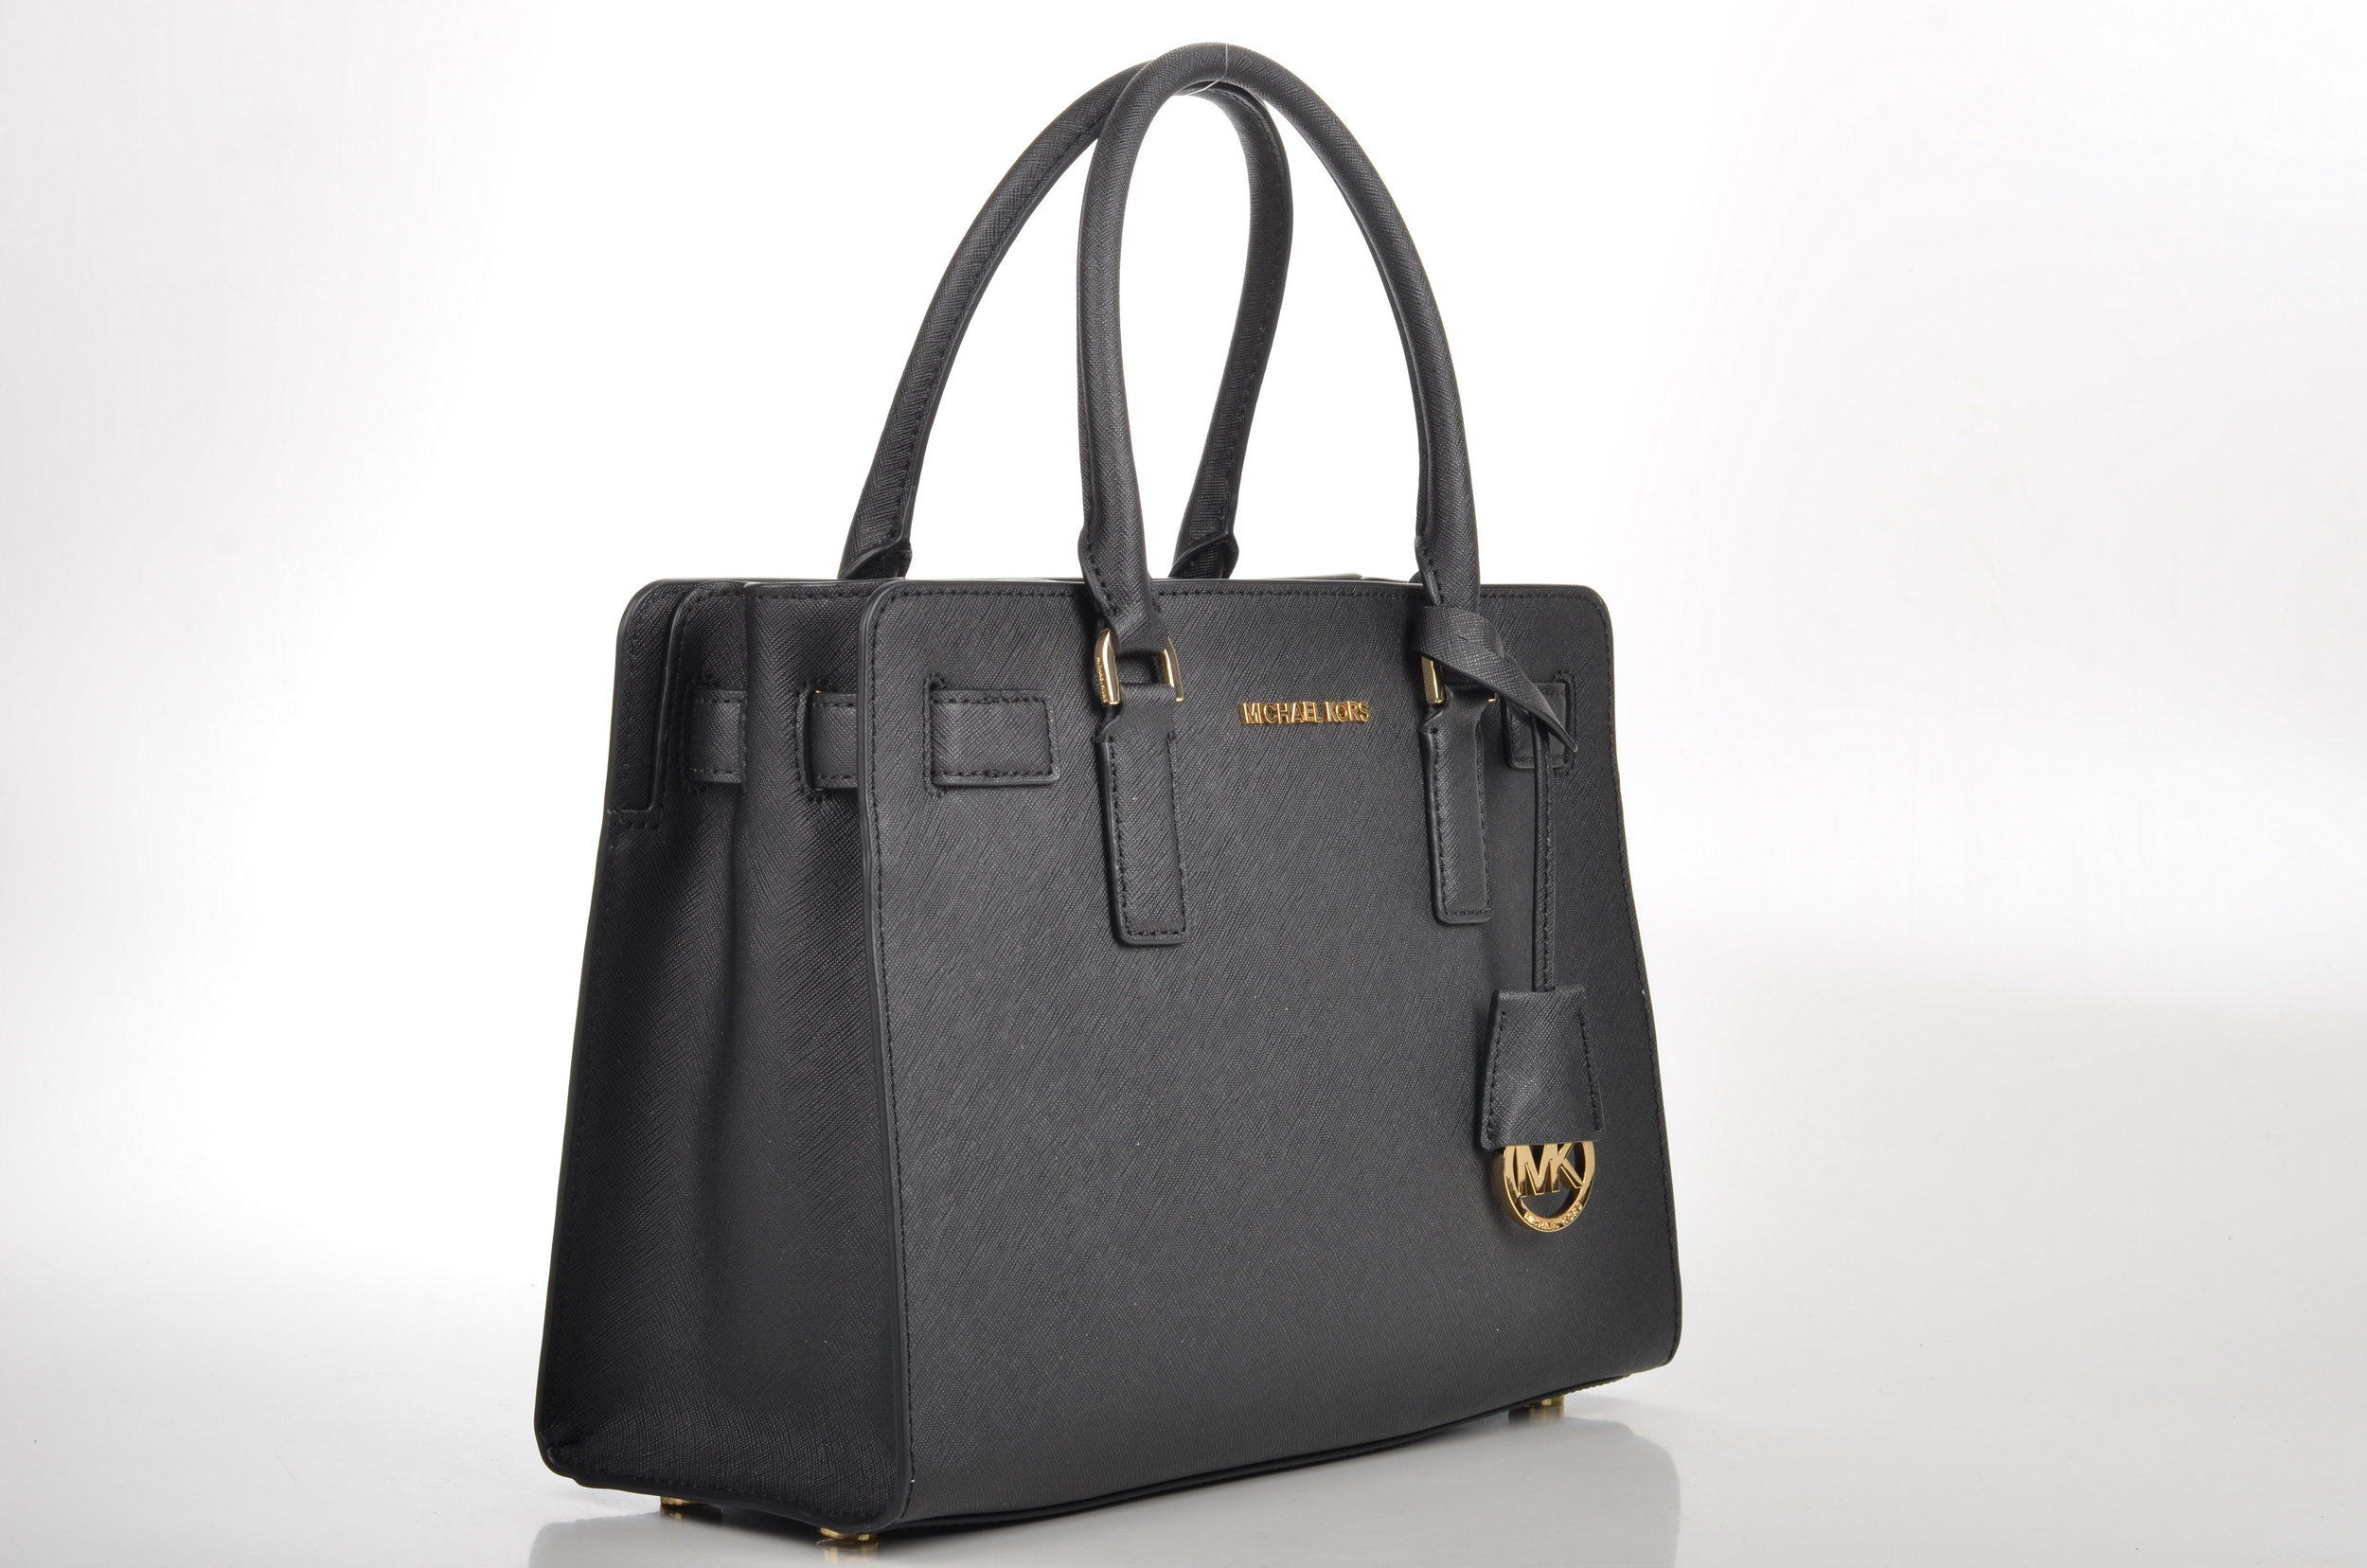 file michael kors dillon ew satchel handtasche 30h4gais3l kalbsleder schwarz gold 2. Black Bedroom Furniture Sets. Home Design Ideas